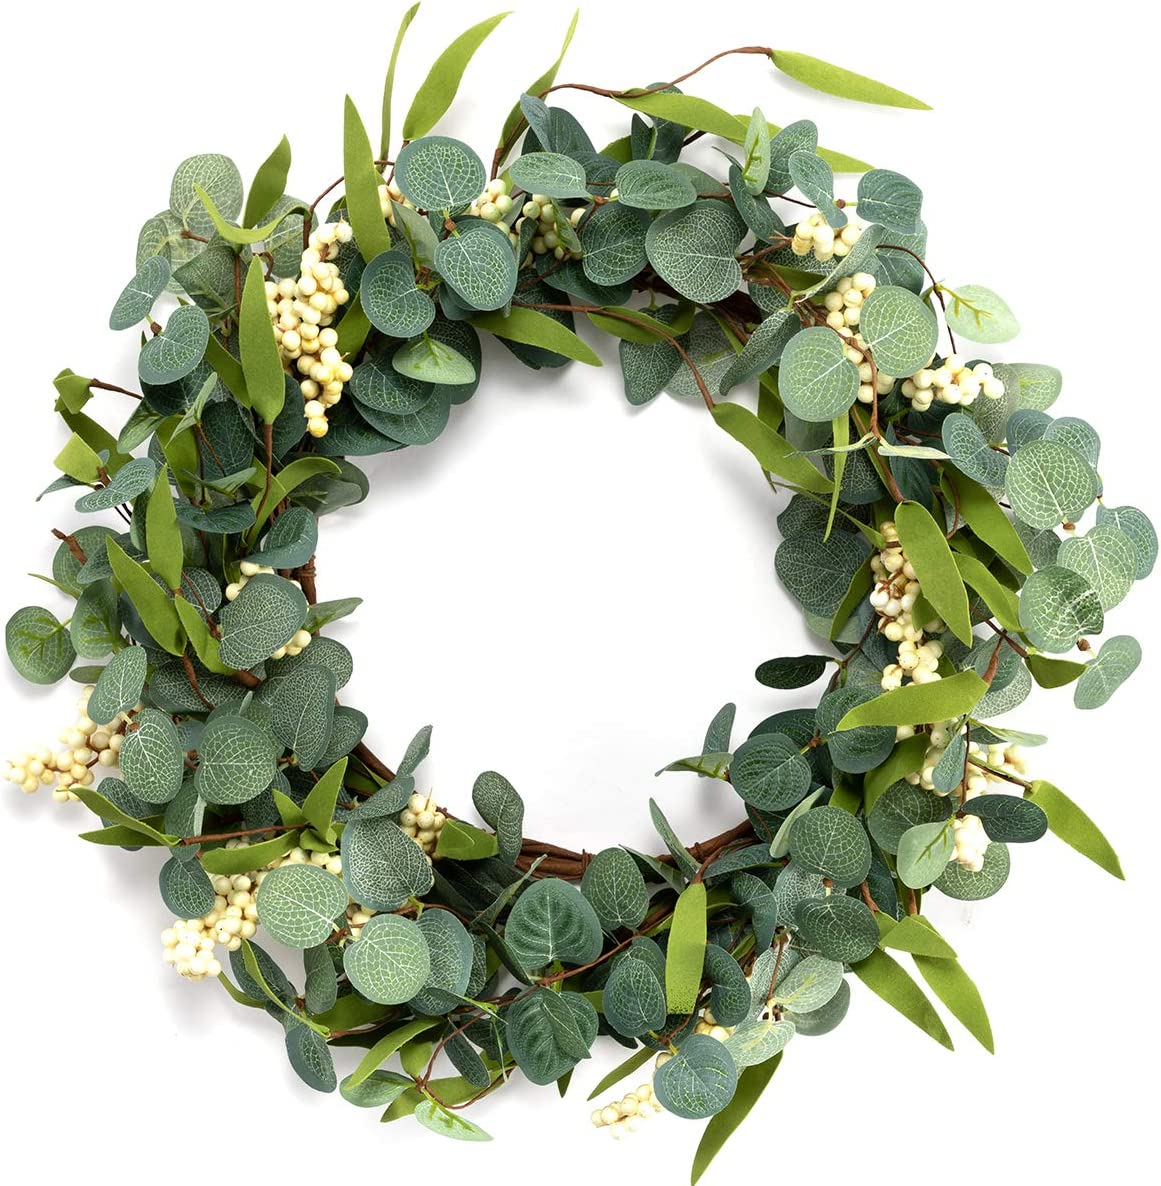 """Lifeety Artificial Eucalyptus Wreath, 20"""" Fake Green Leaves Wreath for Home Front Door Hanging Wall Window Wedding Party Decor"""